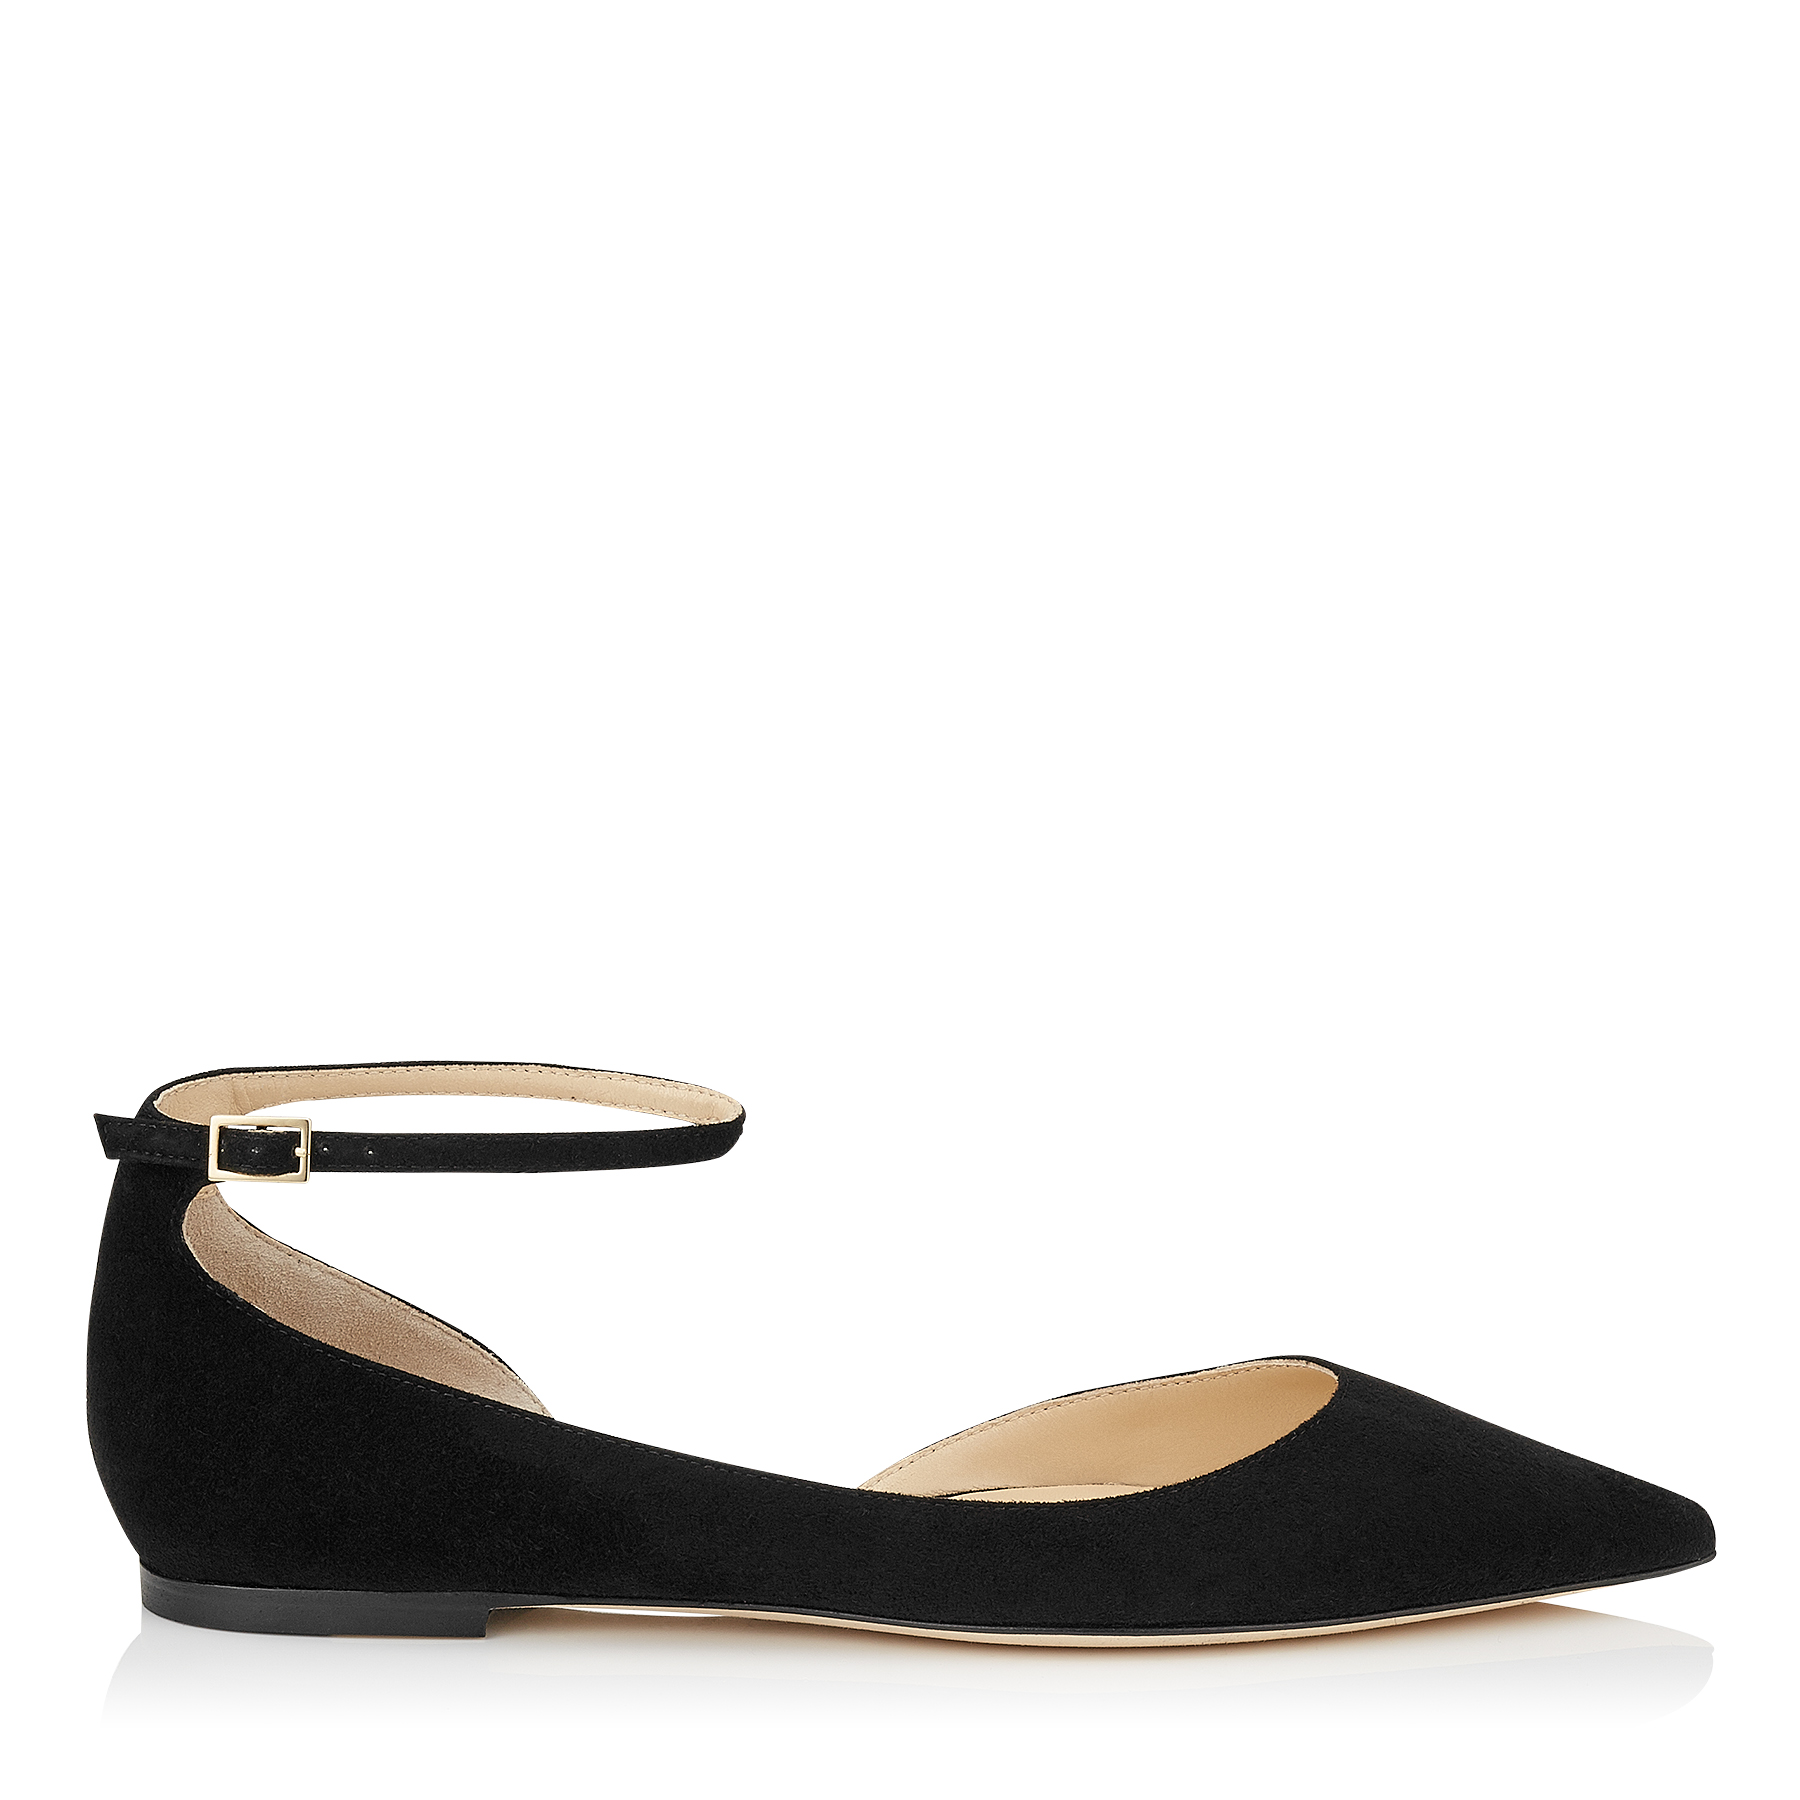 LUCY FLAT Black Suede Pointy Toe Flats